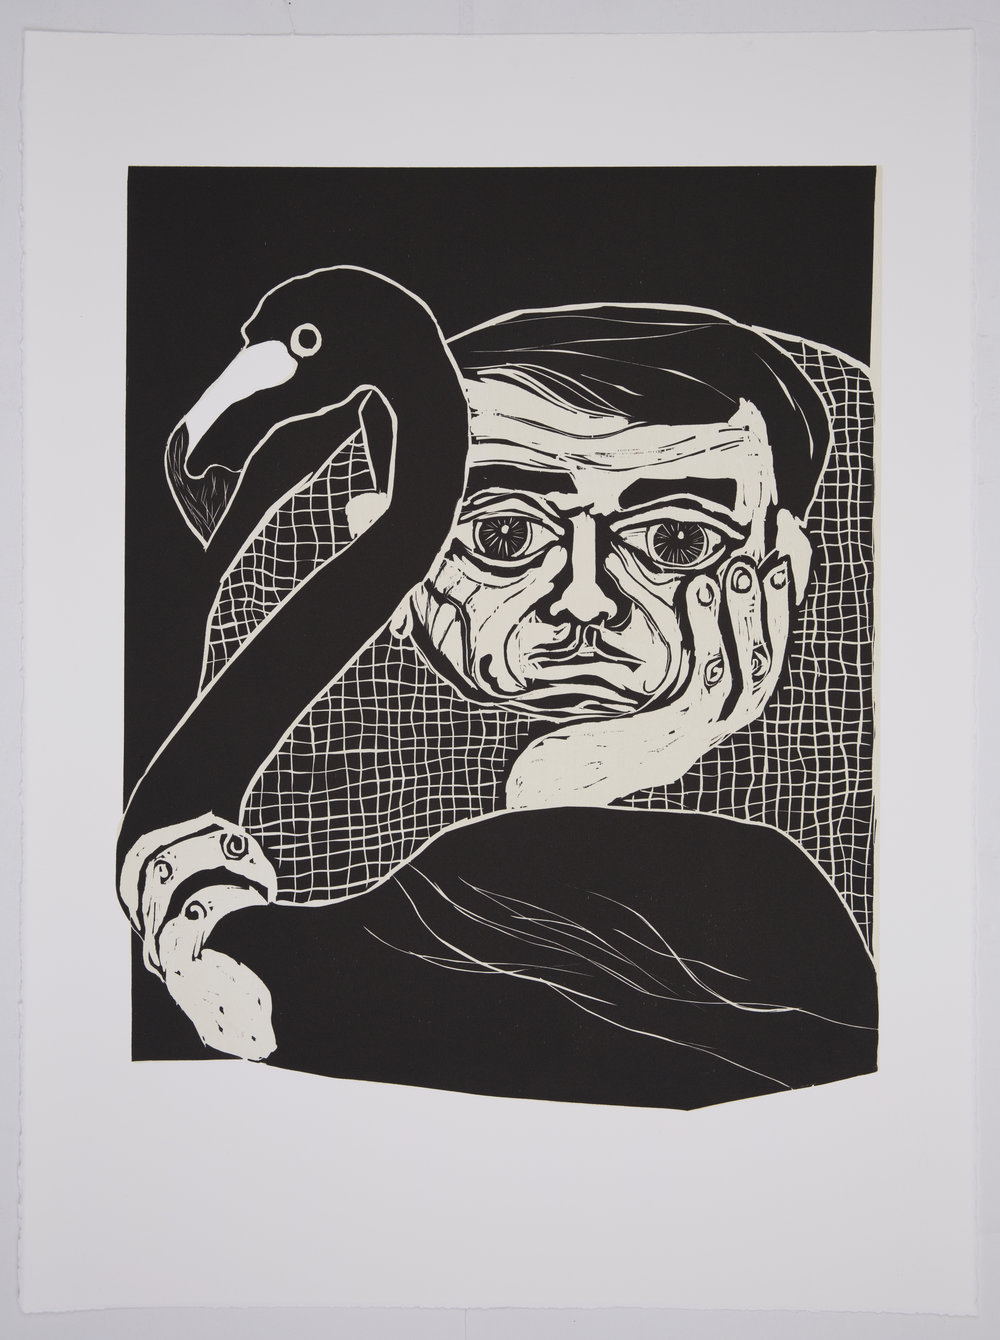 LACRIMINAL II , 2016 Woodcut Image and Paper Size: 17.5 x 22.25 inches Edition of 10